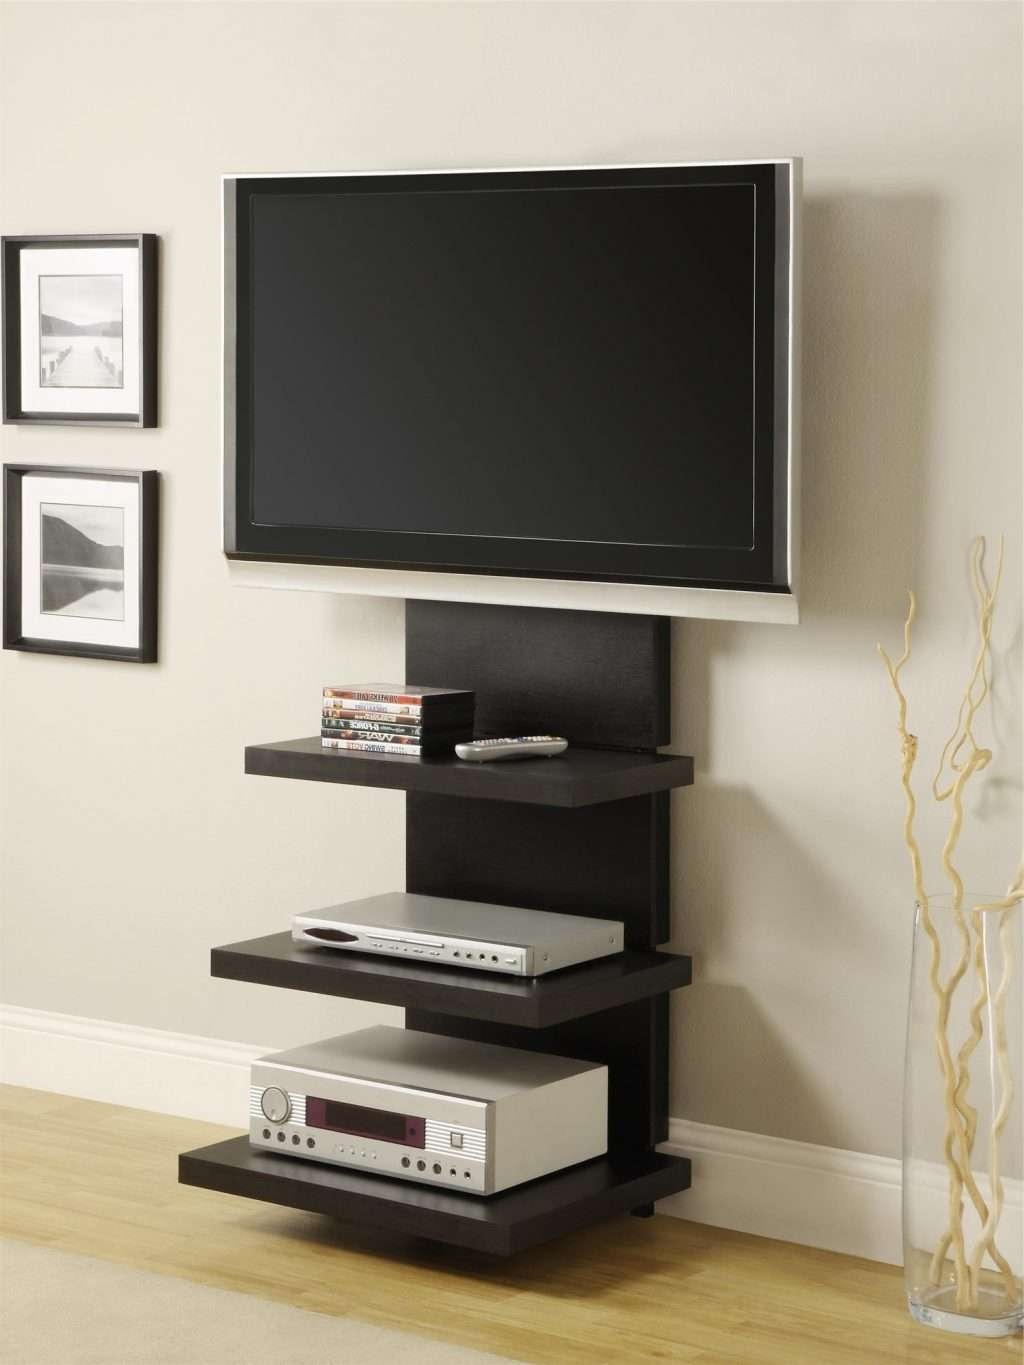 Living ~ Long Low Tv Stand Tv Stands For 55 Inch Tv Wood Led Tv Inside Long Low Tv Stands (View 6 of 15)